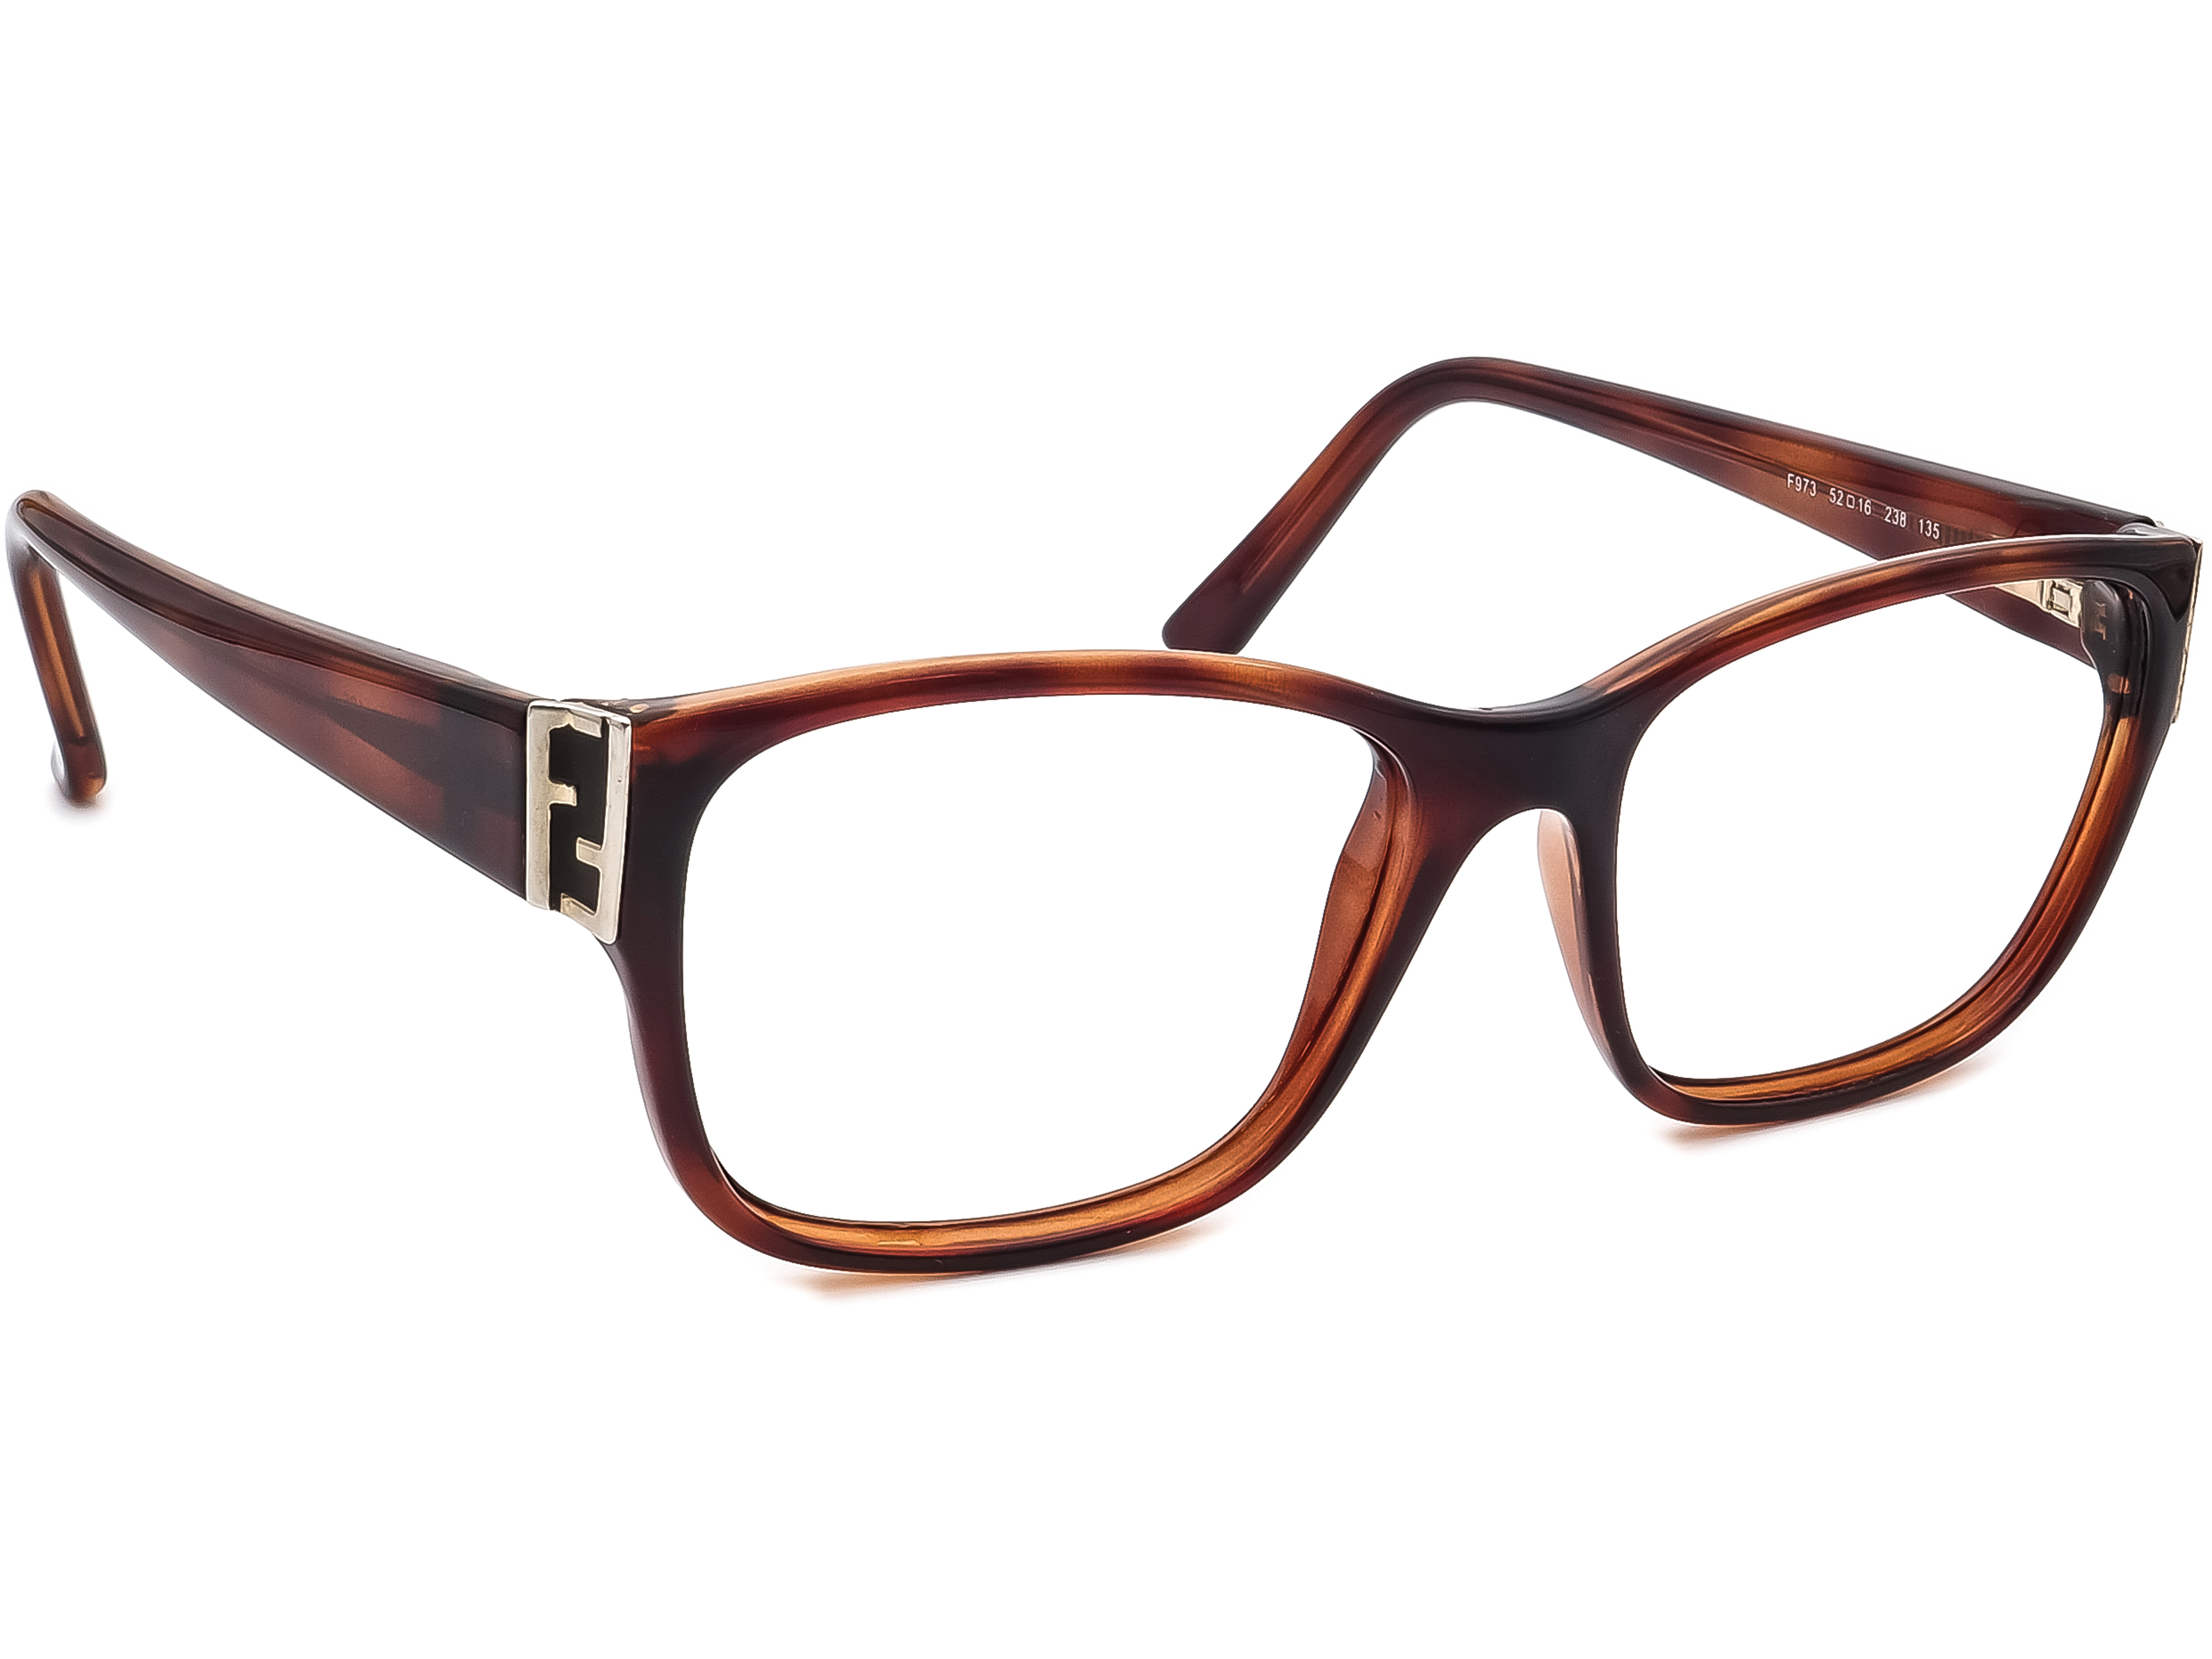 Fendi F973 238 Eyeglasses